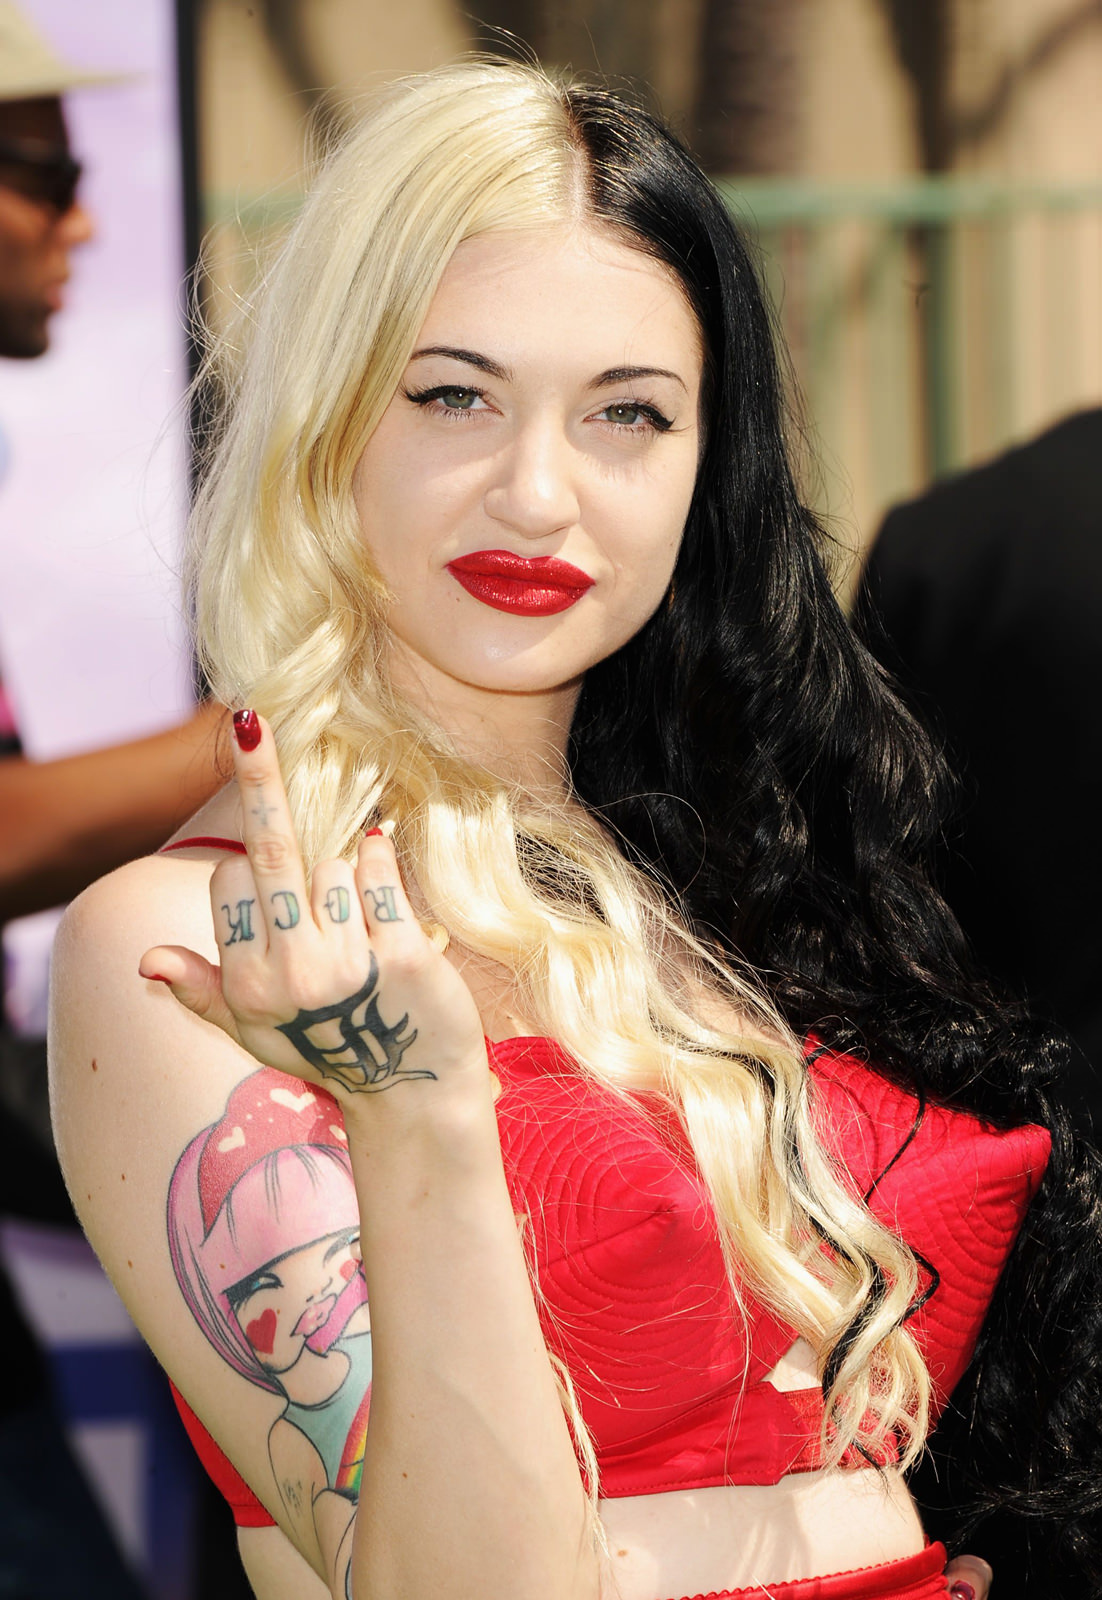 Porcelain Black Photo Gallery